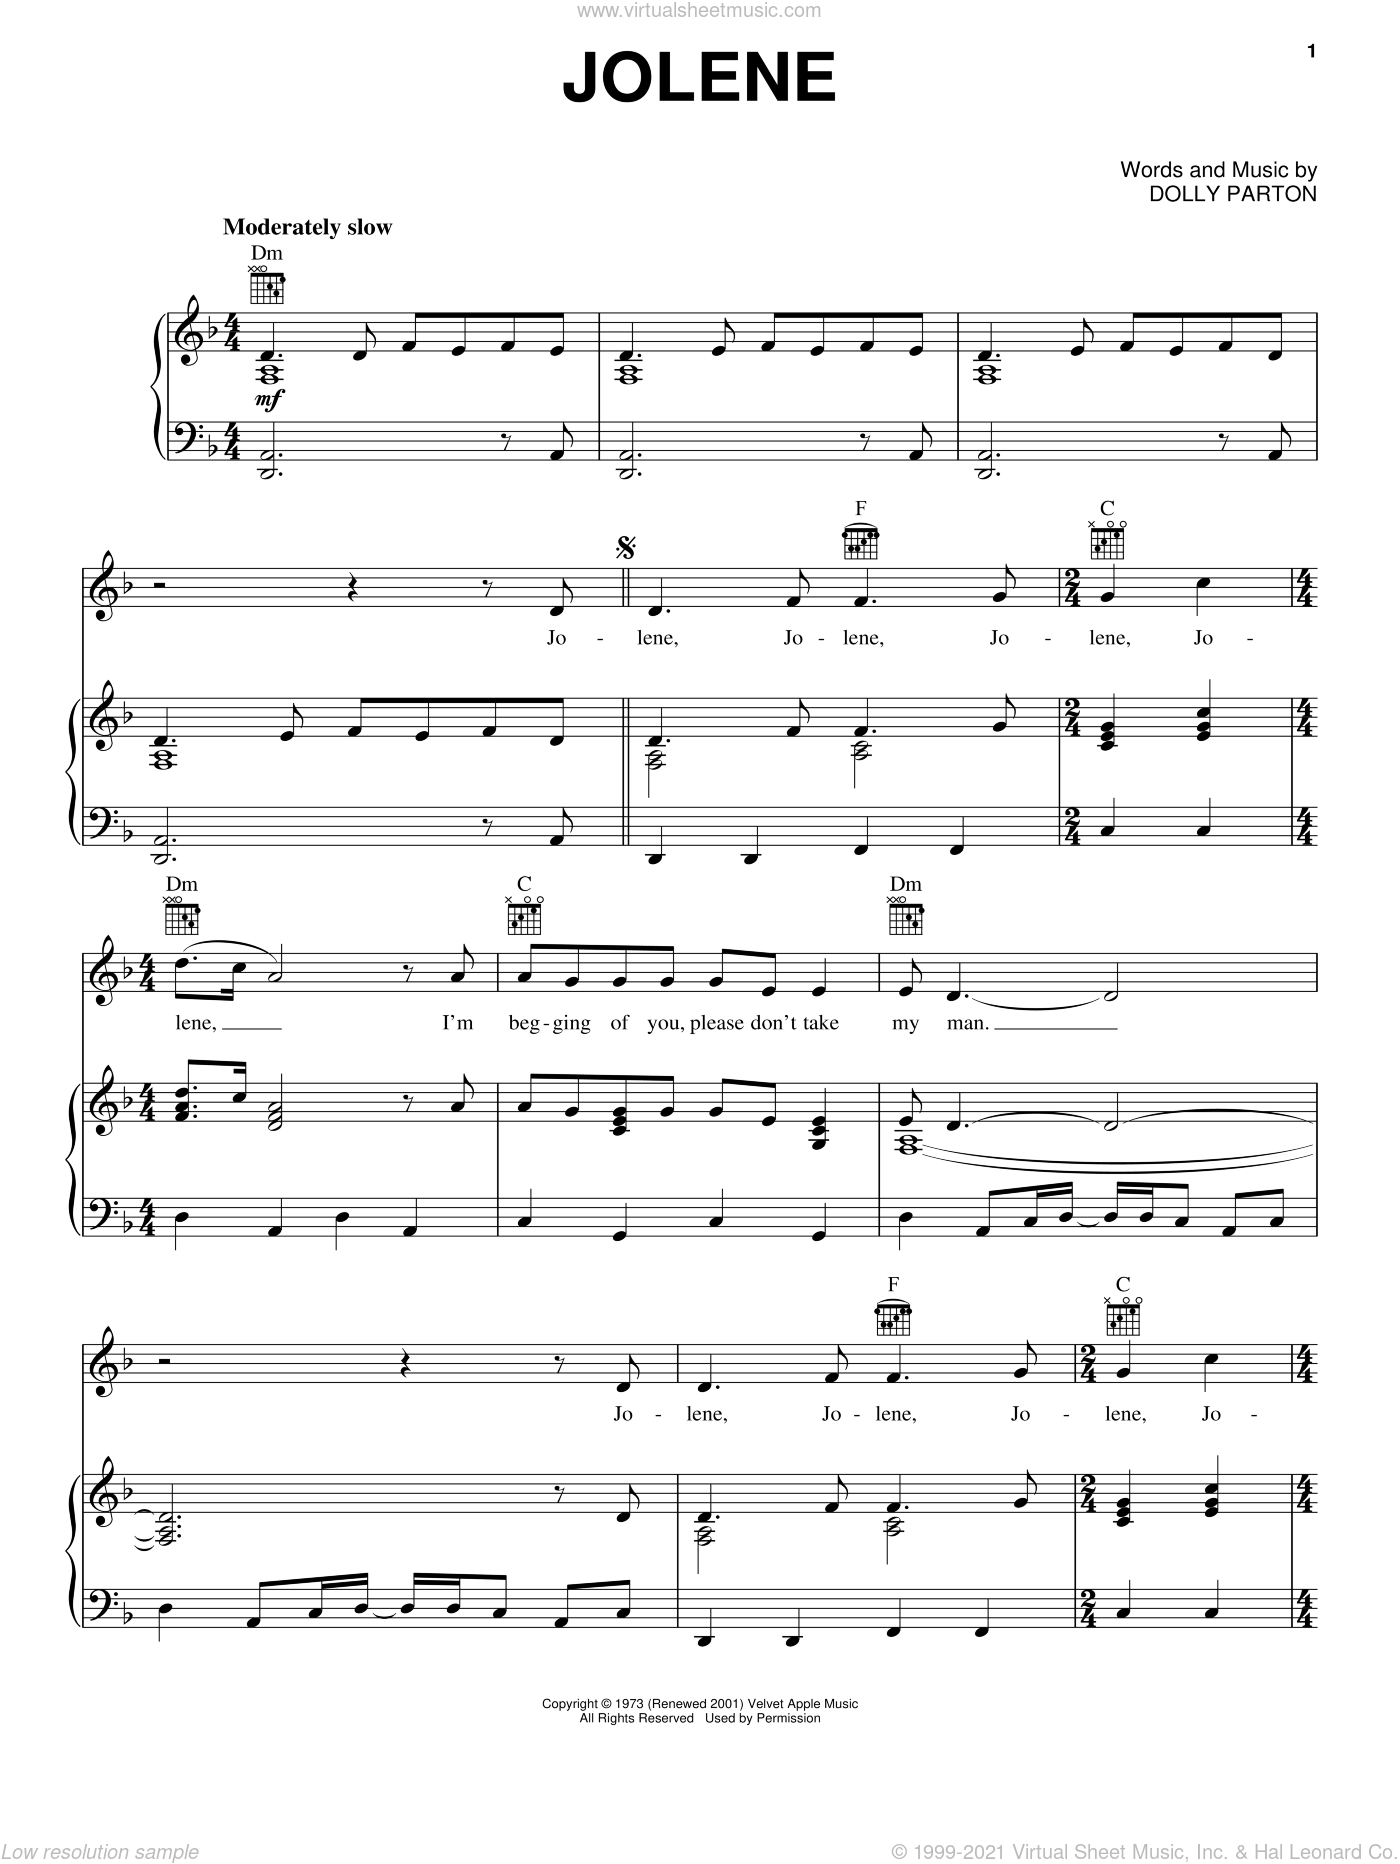 Jolene sheet music for voice, piano or guitar by Dolly Parton, intermediate skill level